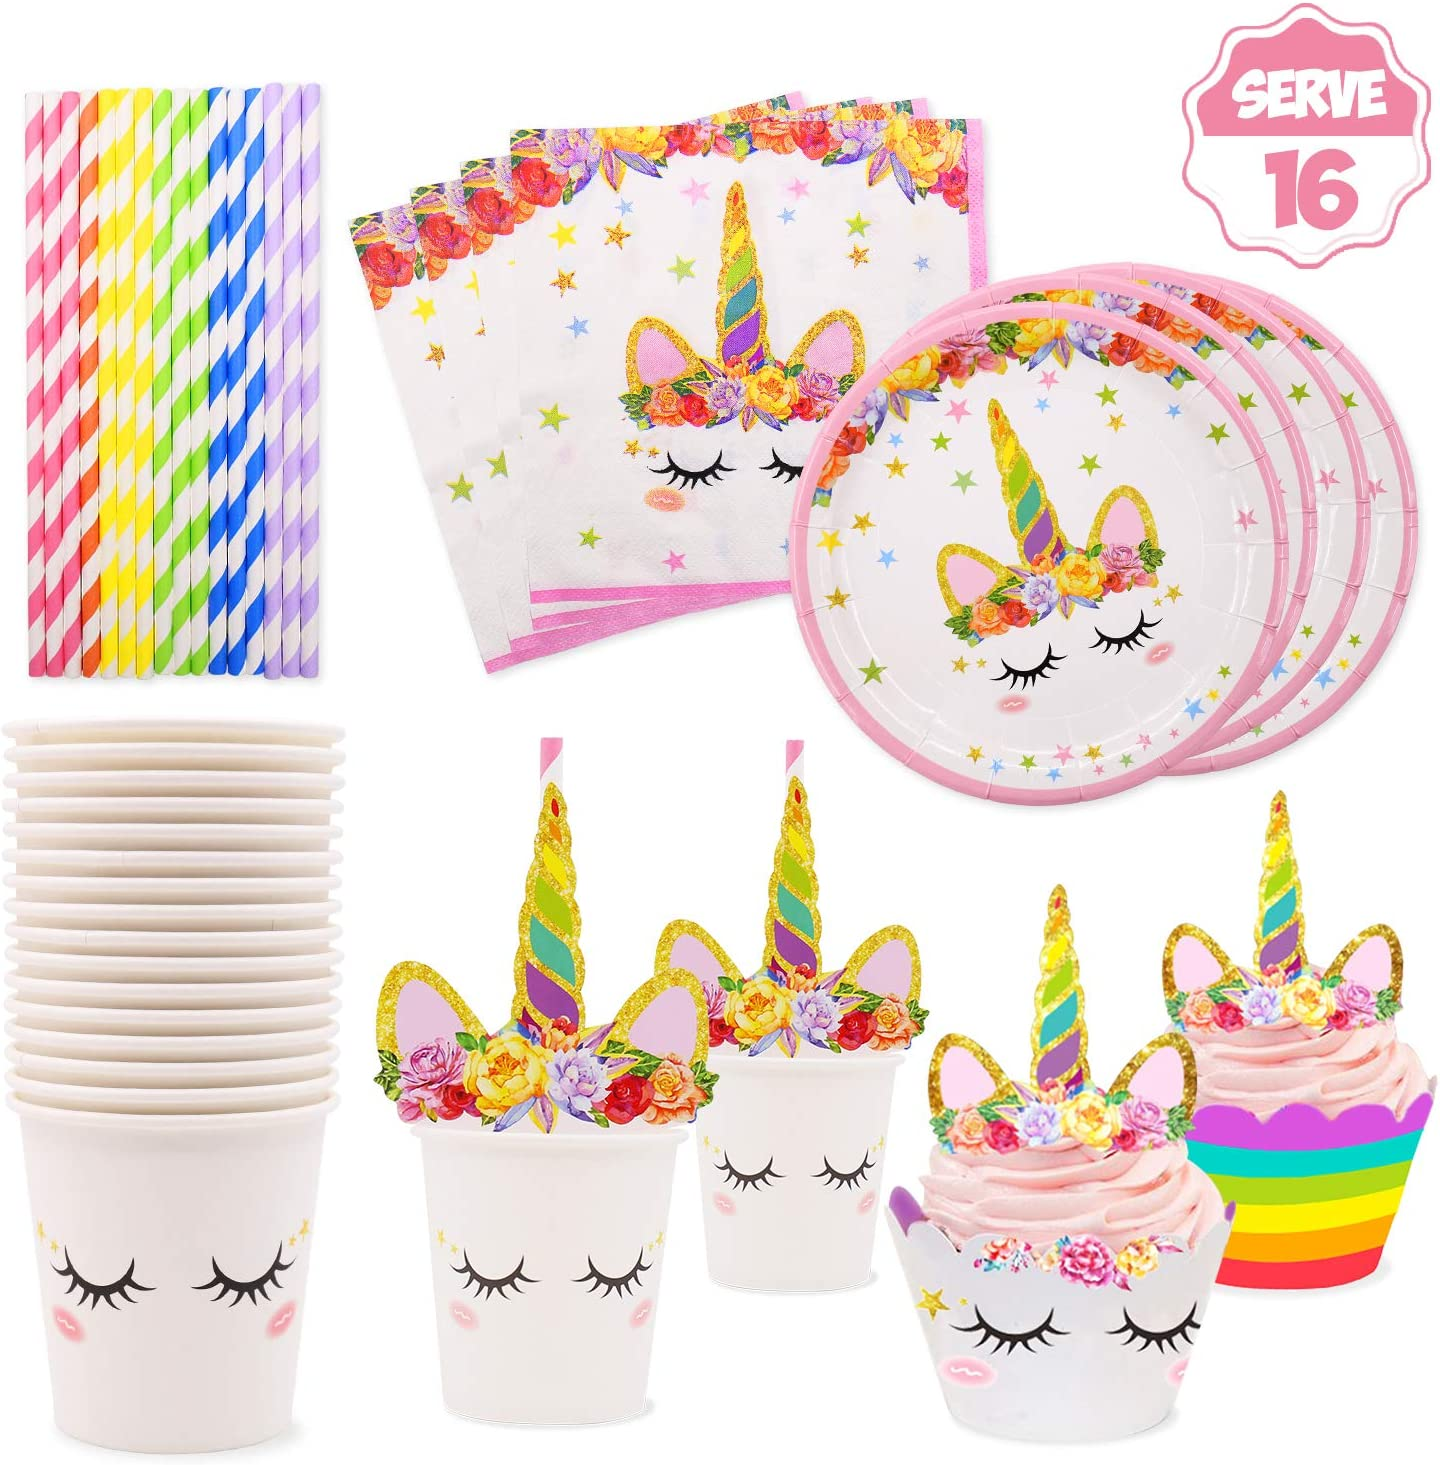 Table Cover Cutlery Napkins Plates Magical Unicorn Cups 10/% off over £10